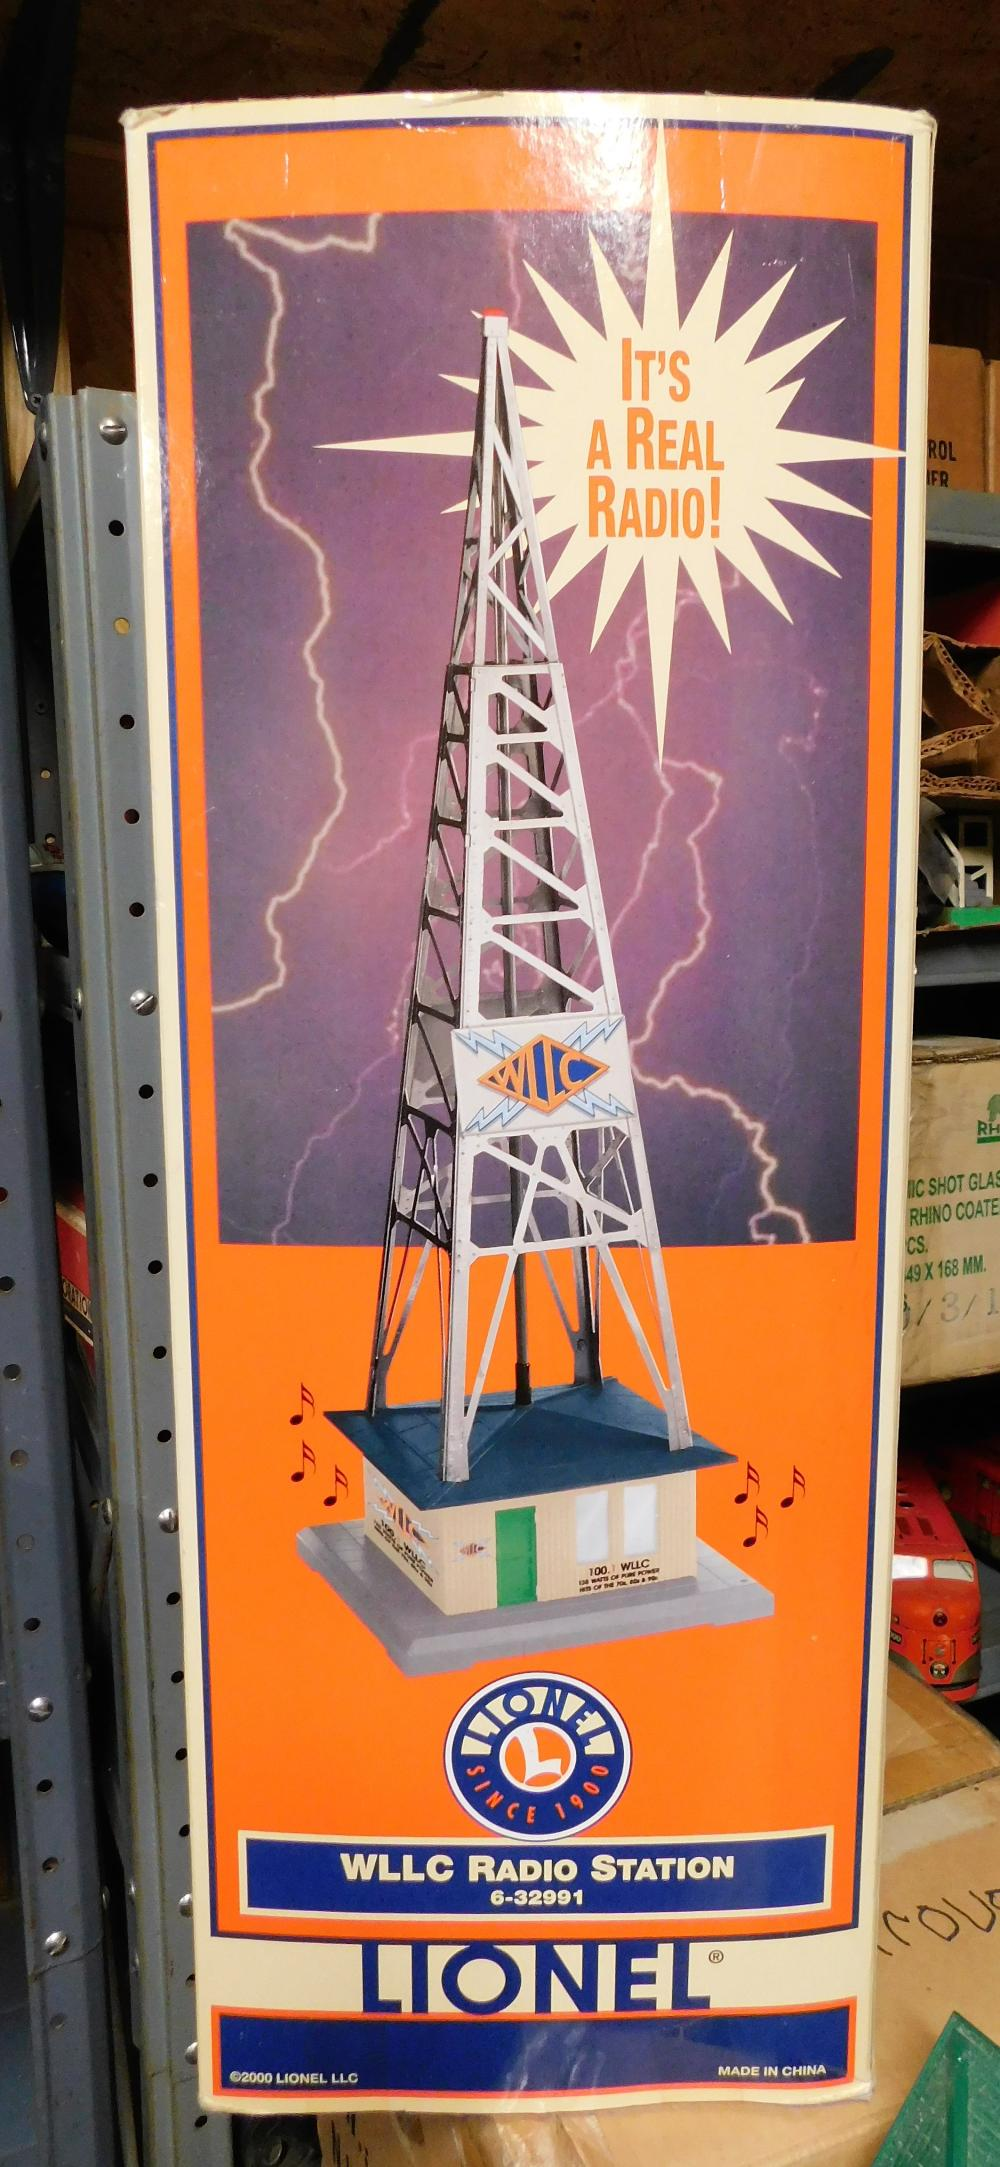 Lot 149: Lionel WLLC Radio Station--Real Radio